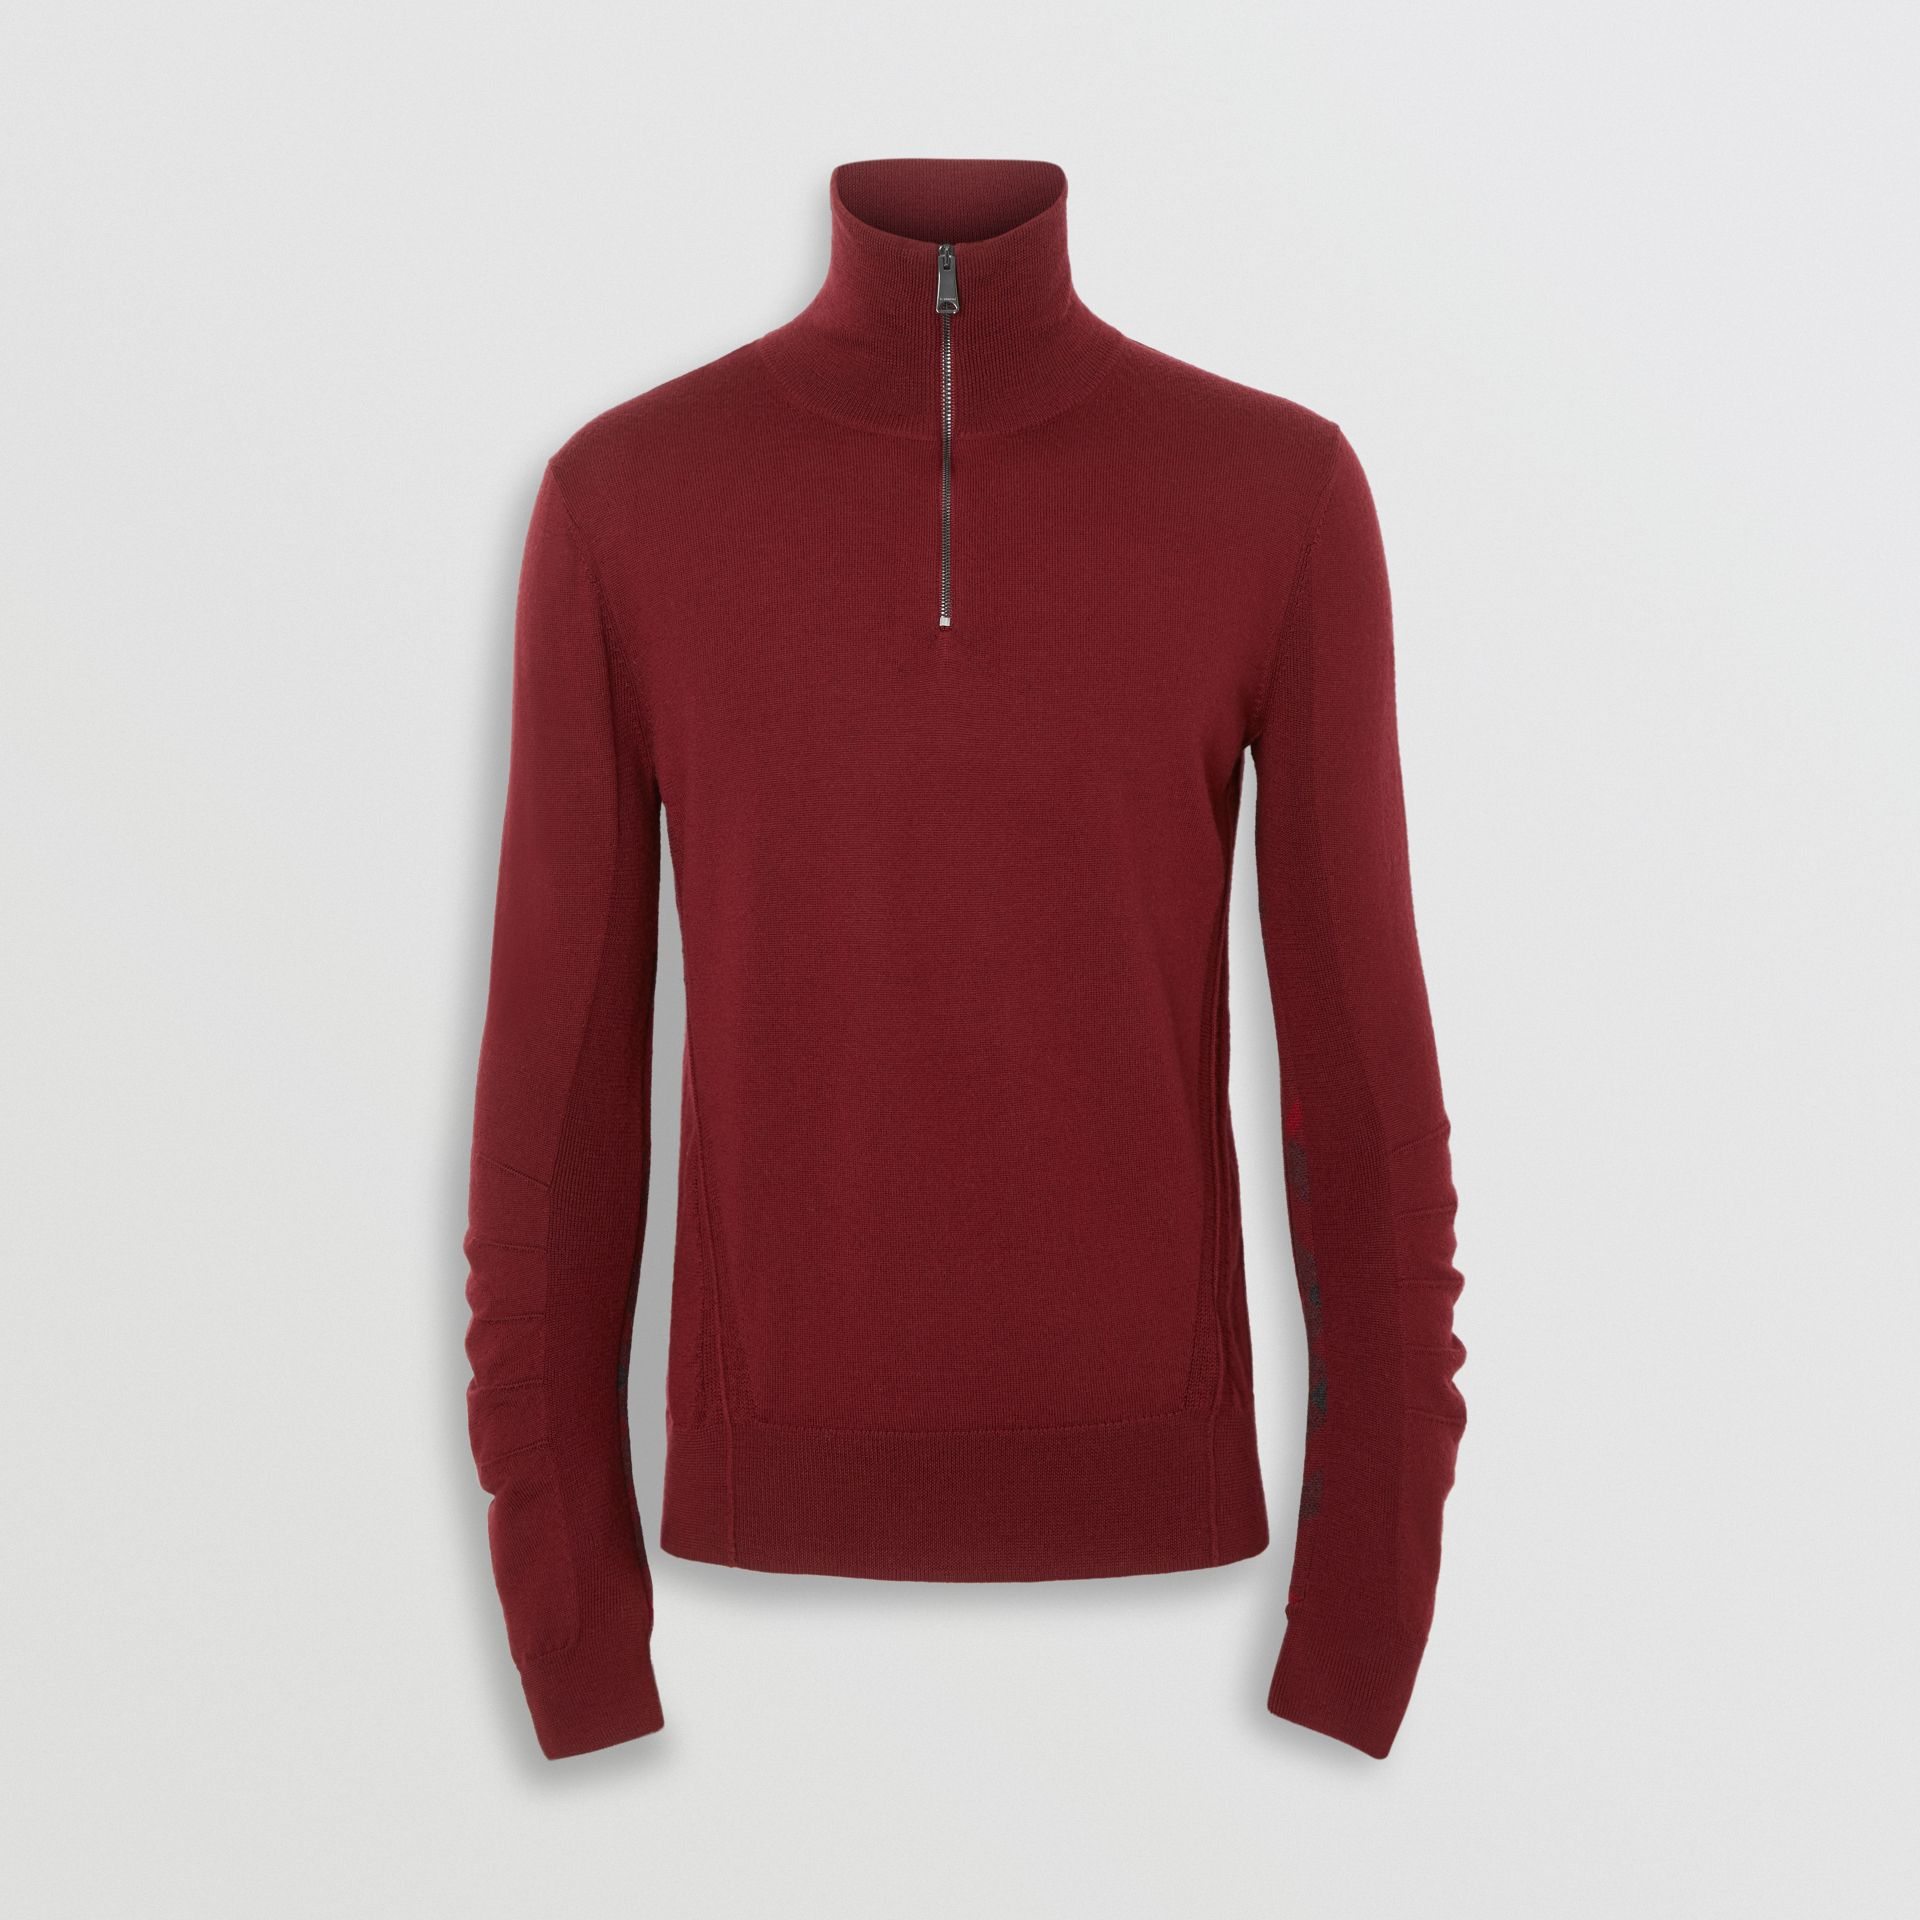 Burberry Burgundy Merino Wool Half-zip Sweater